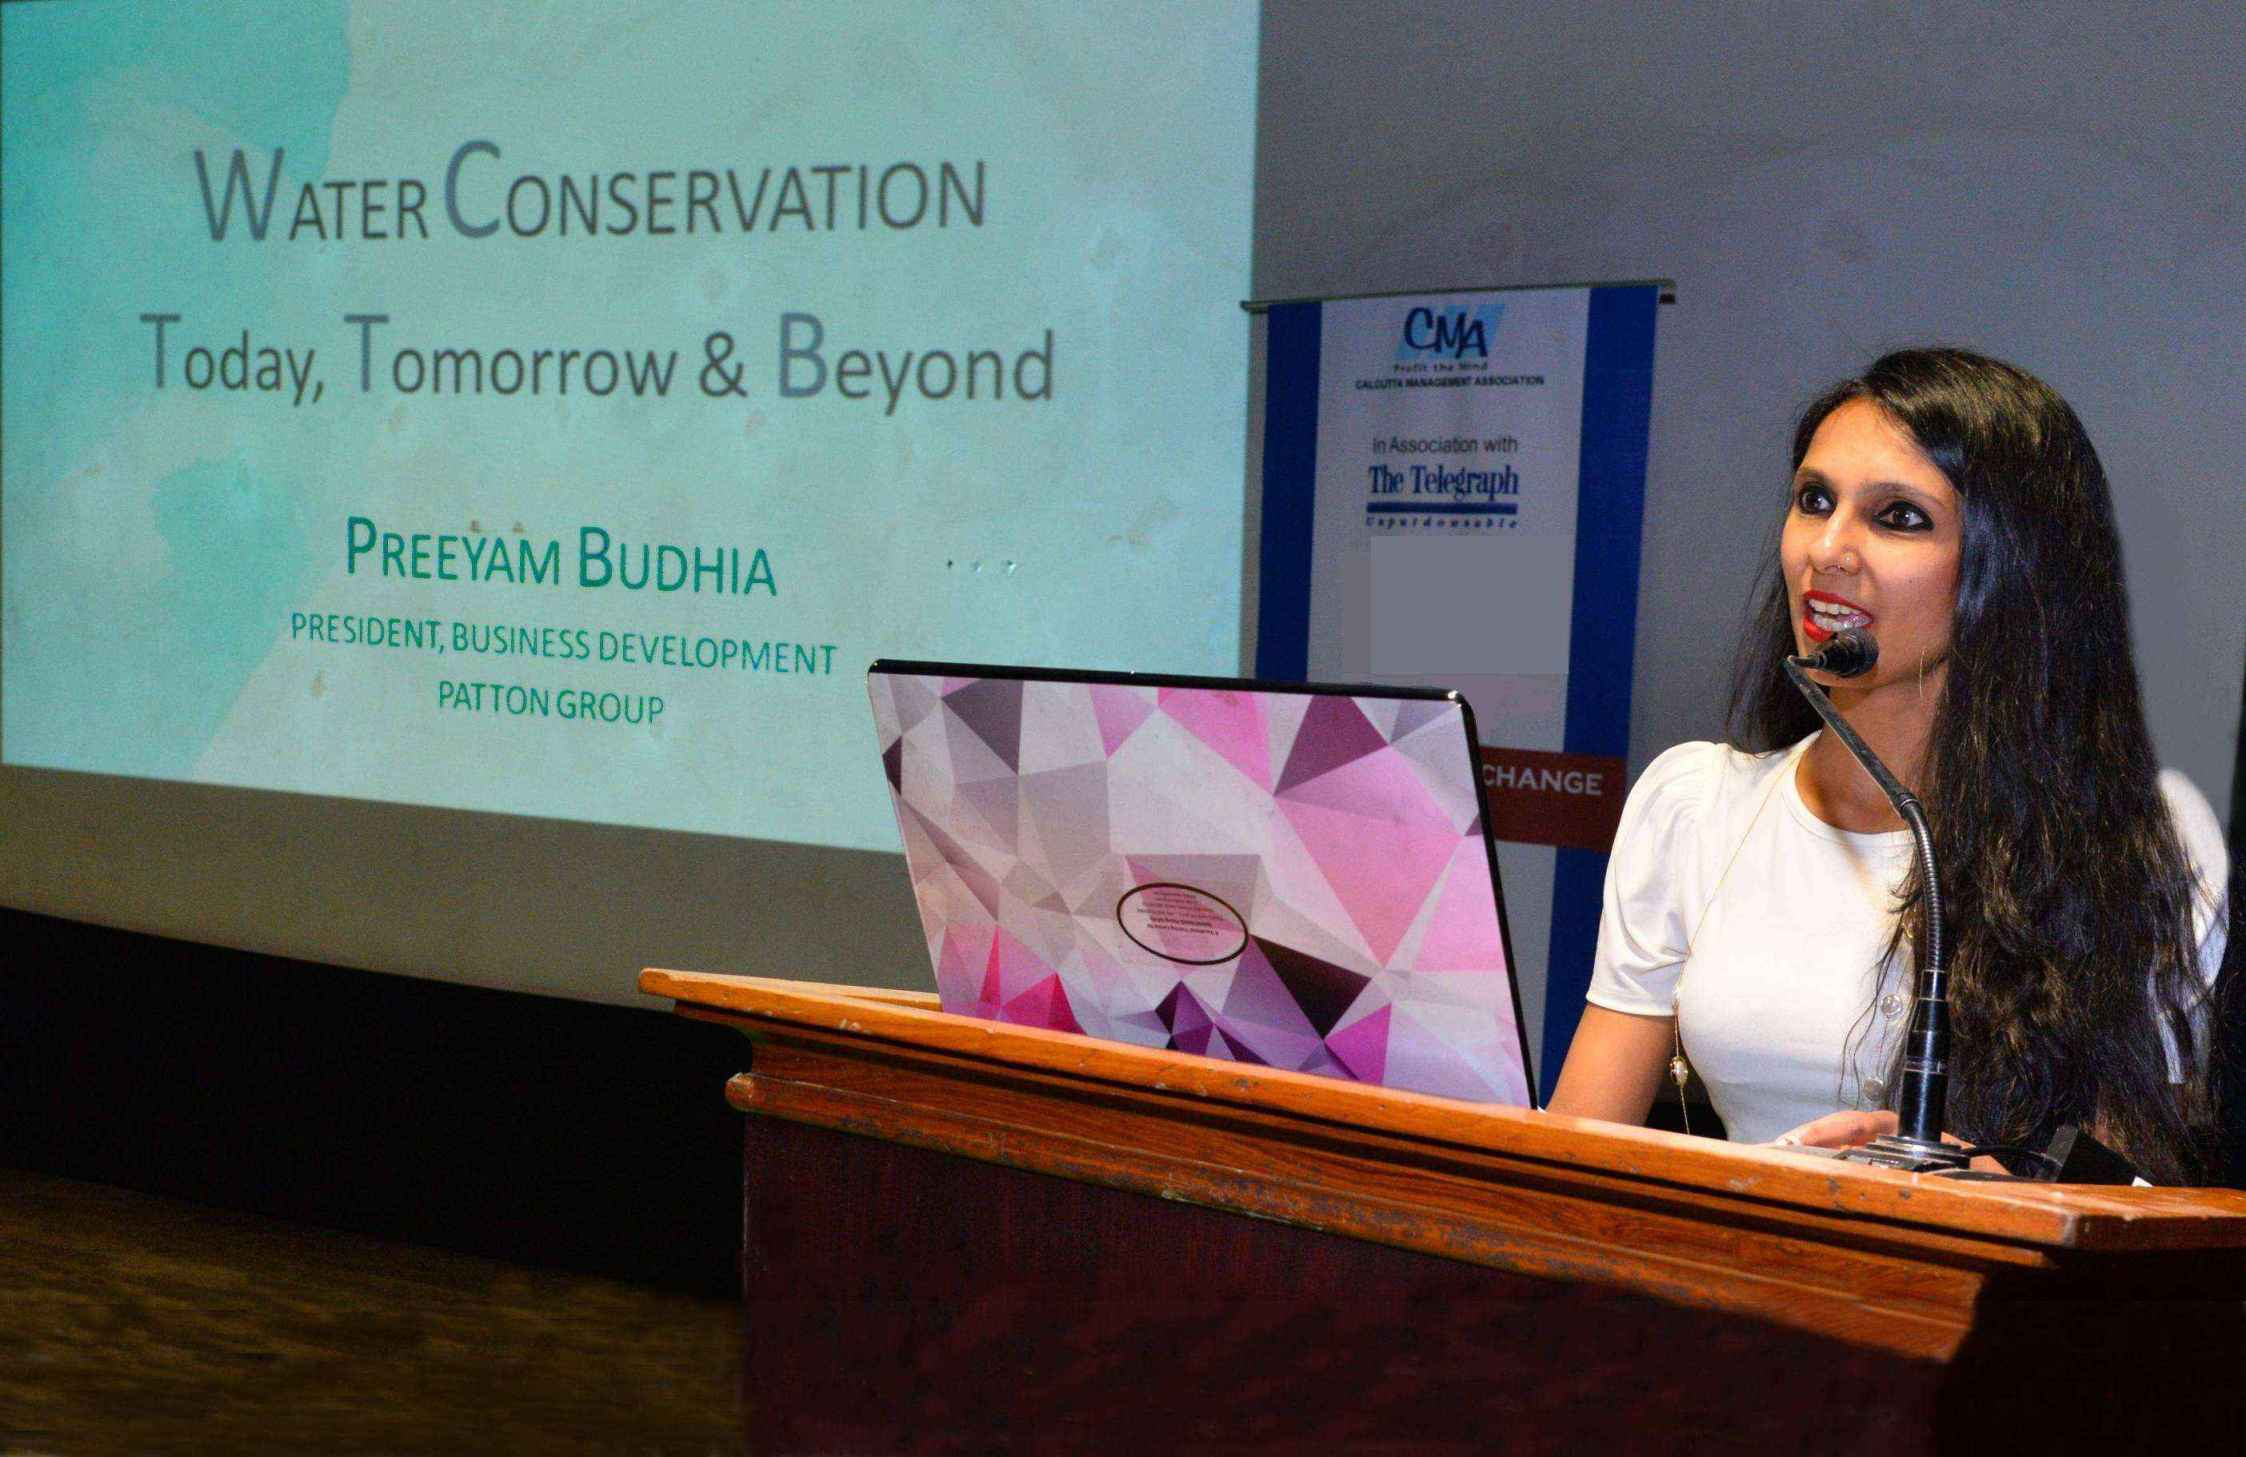 Preeyam Budhia Highlights India's Water Crisis & Patton Group's Water Conservation Initiatives